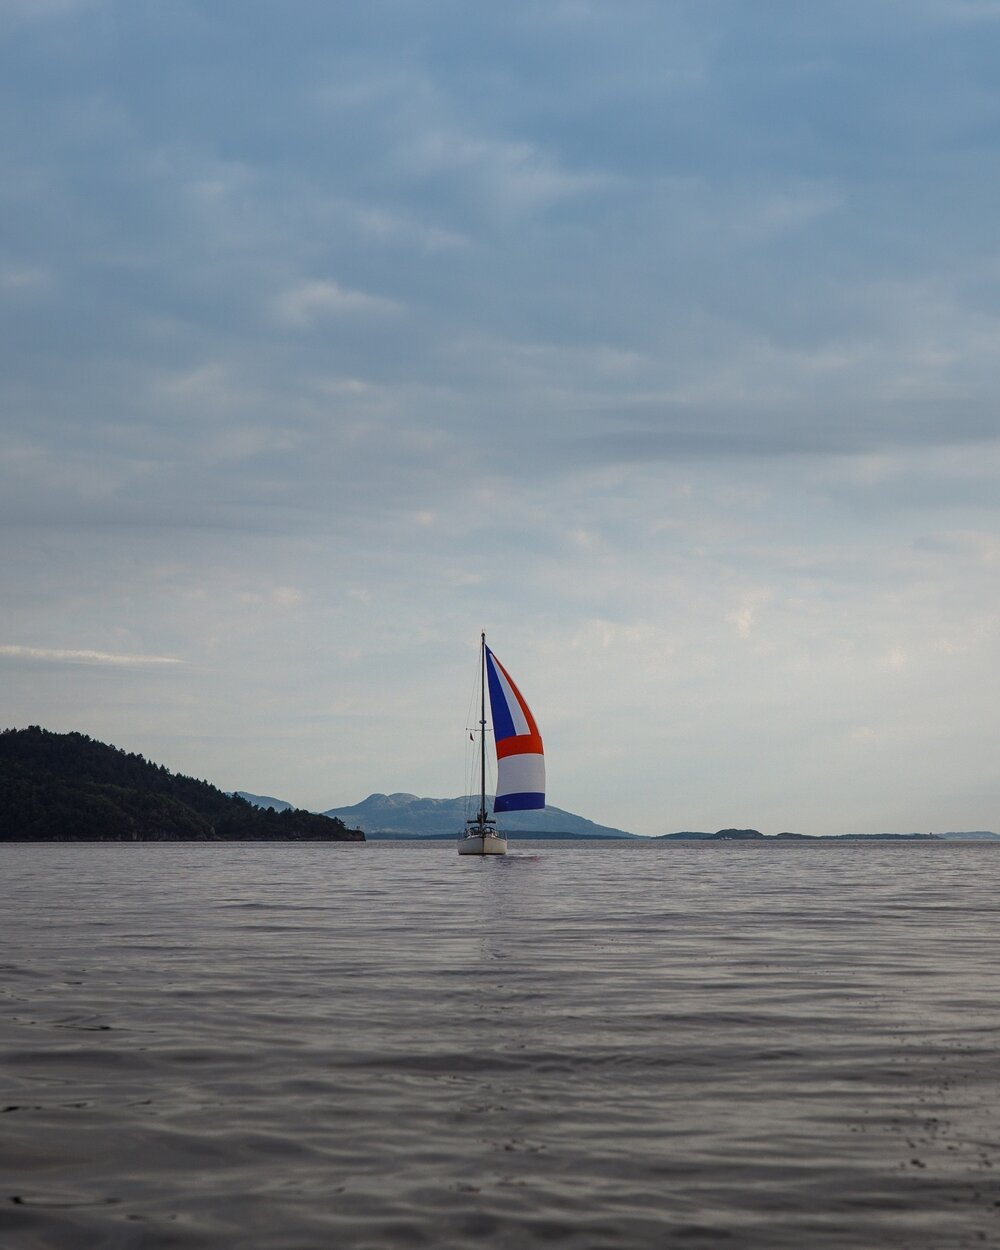 In our lifestyle, being in a hurry is never the solution. . . #sailinguma #dontbuyacouch #spinnakerweather #sailing #innohurrytogoanywhereever